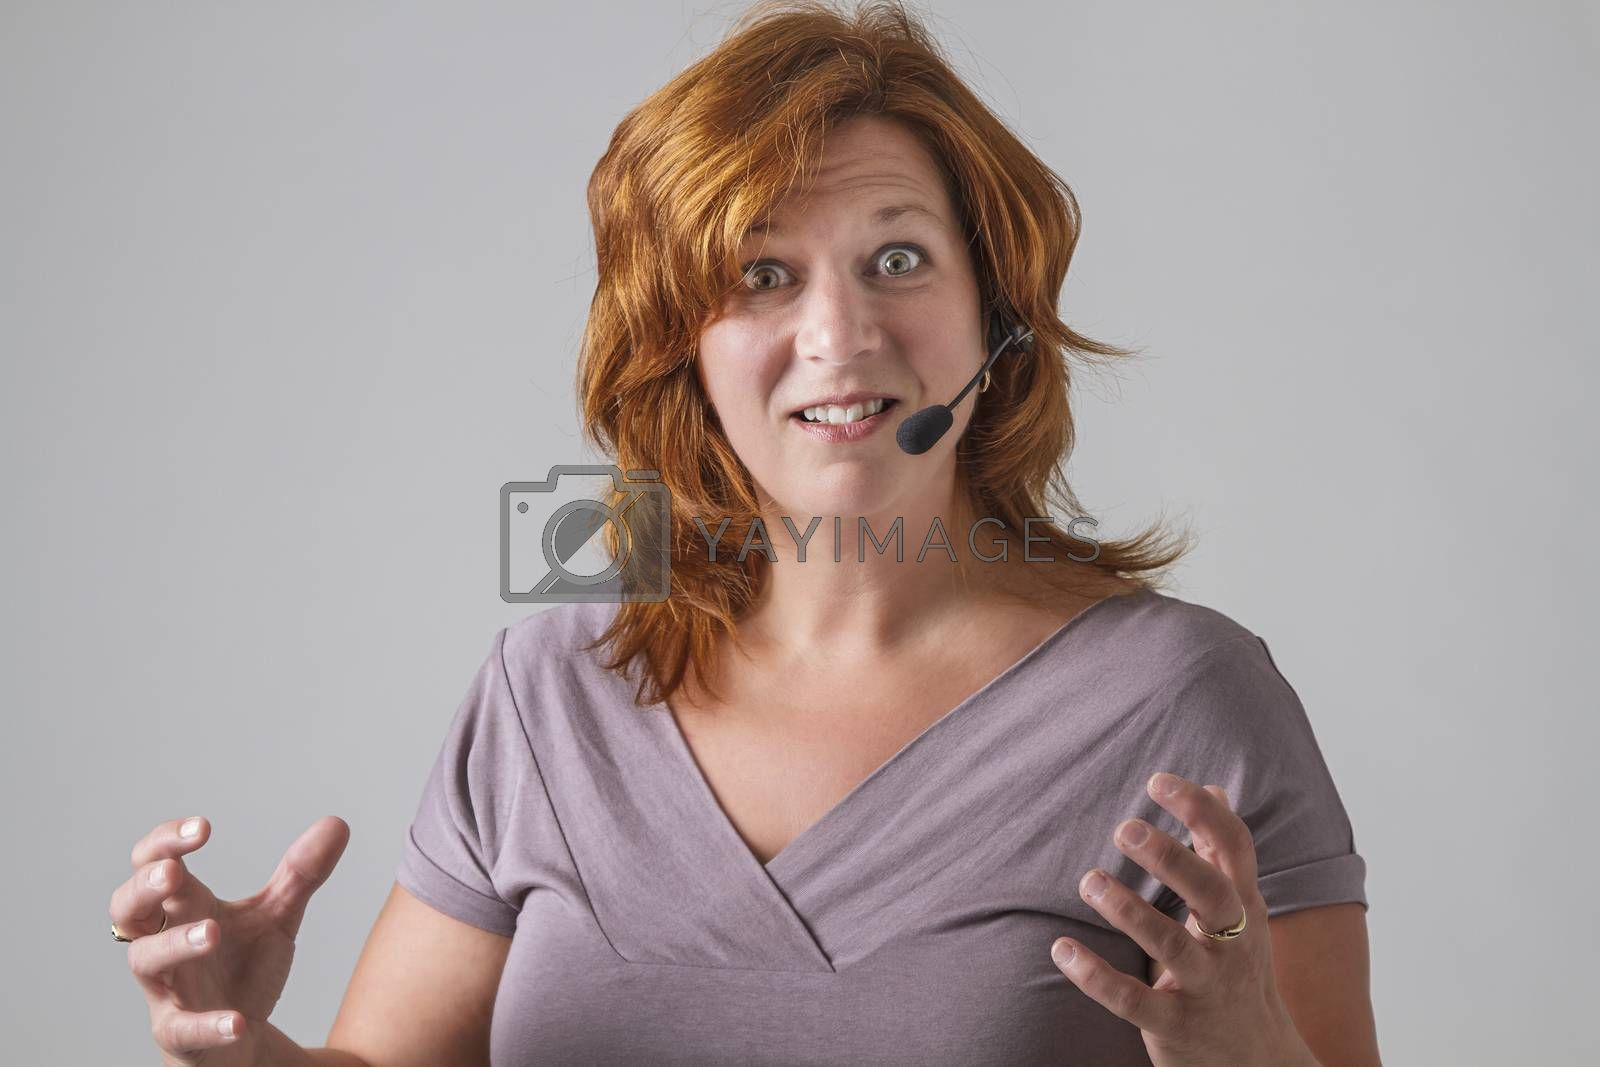 red hair female phone agent with headset with angry expression